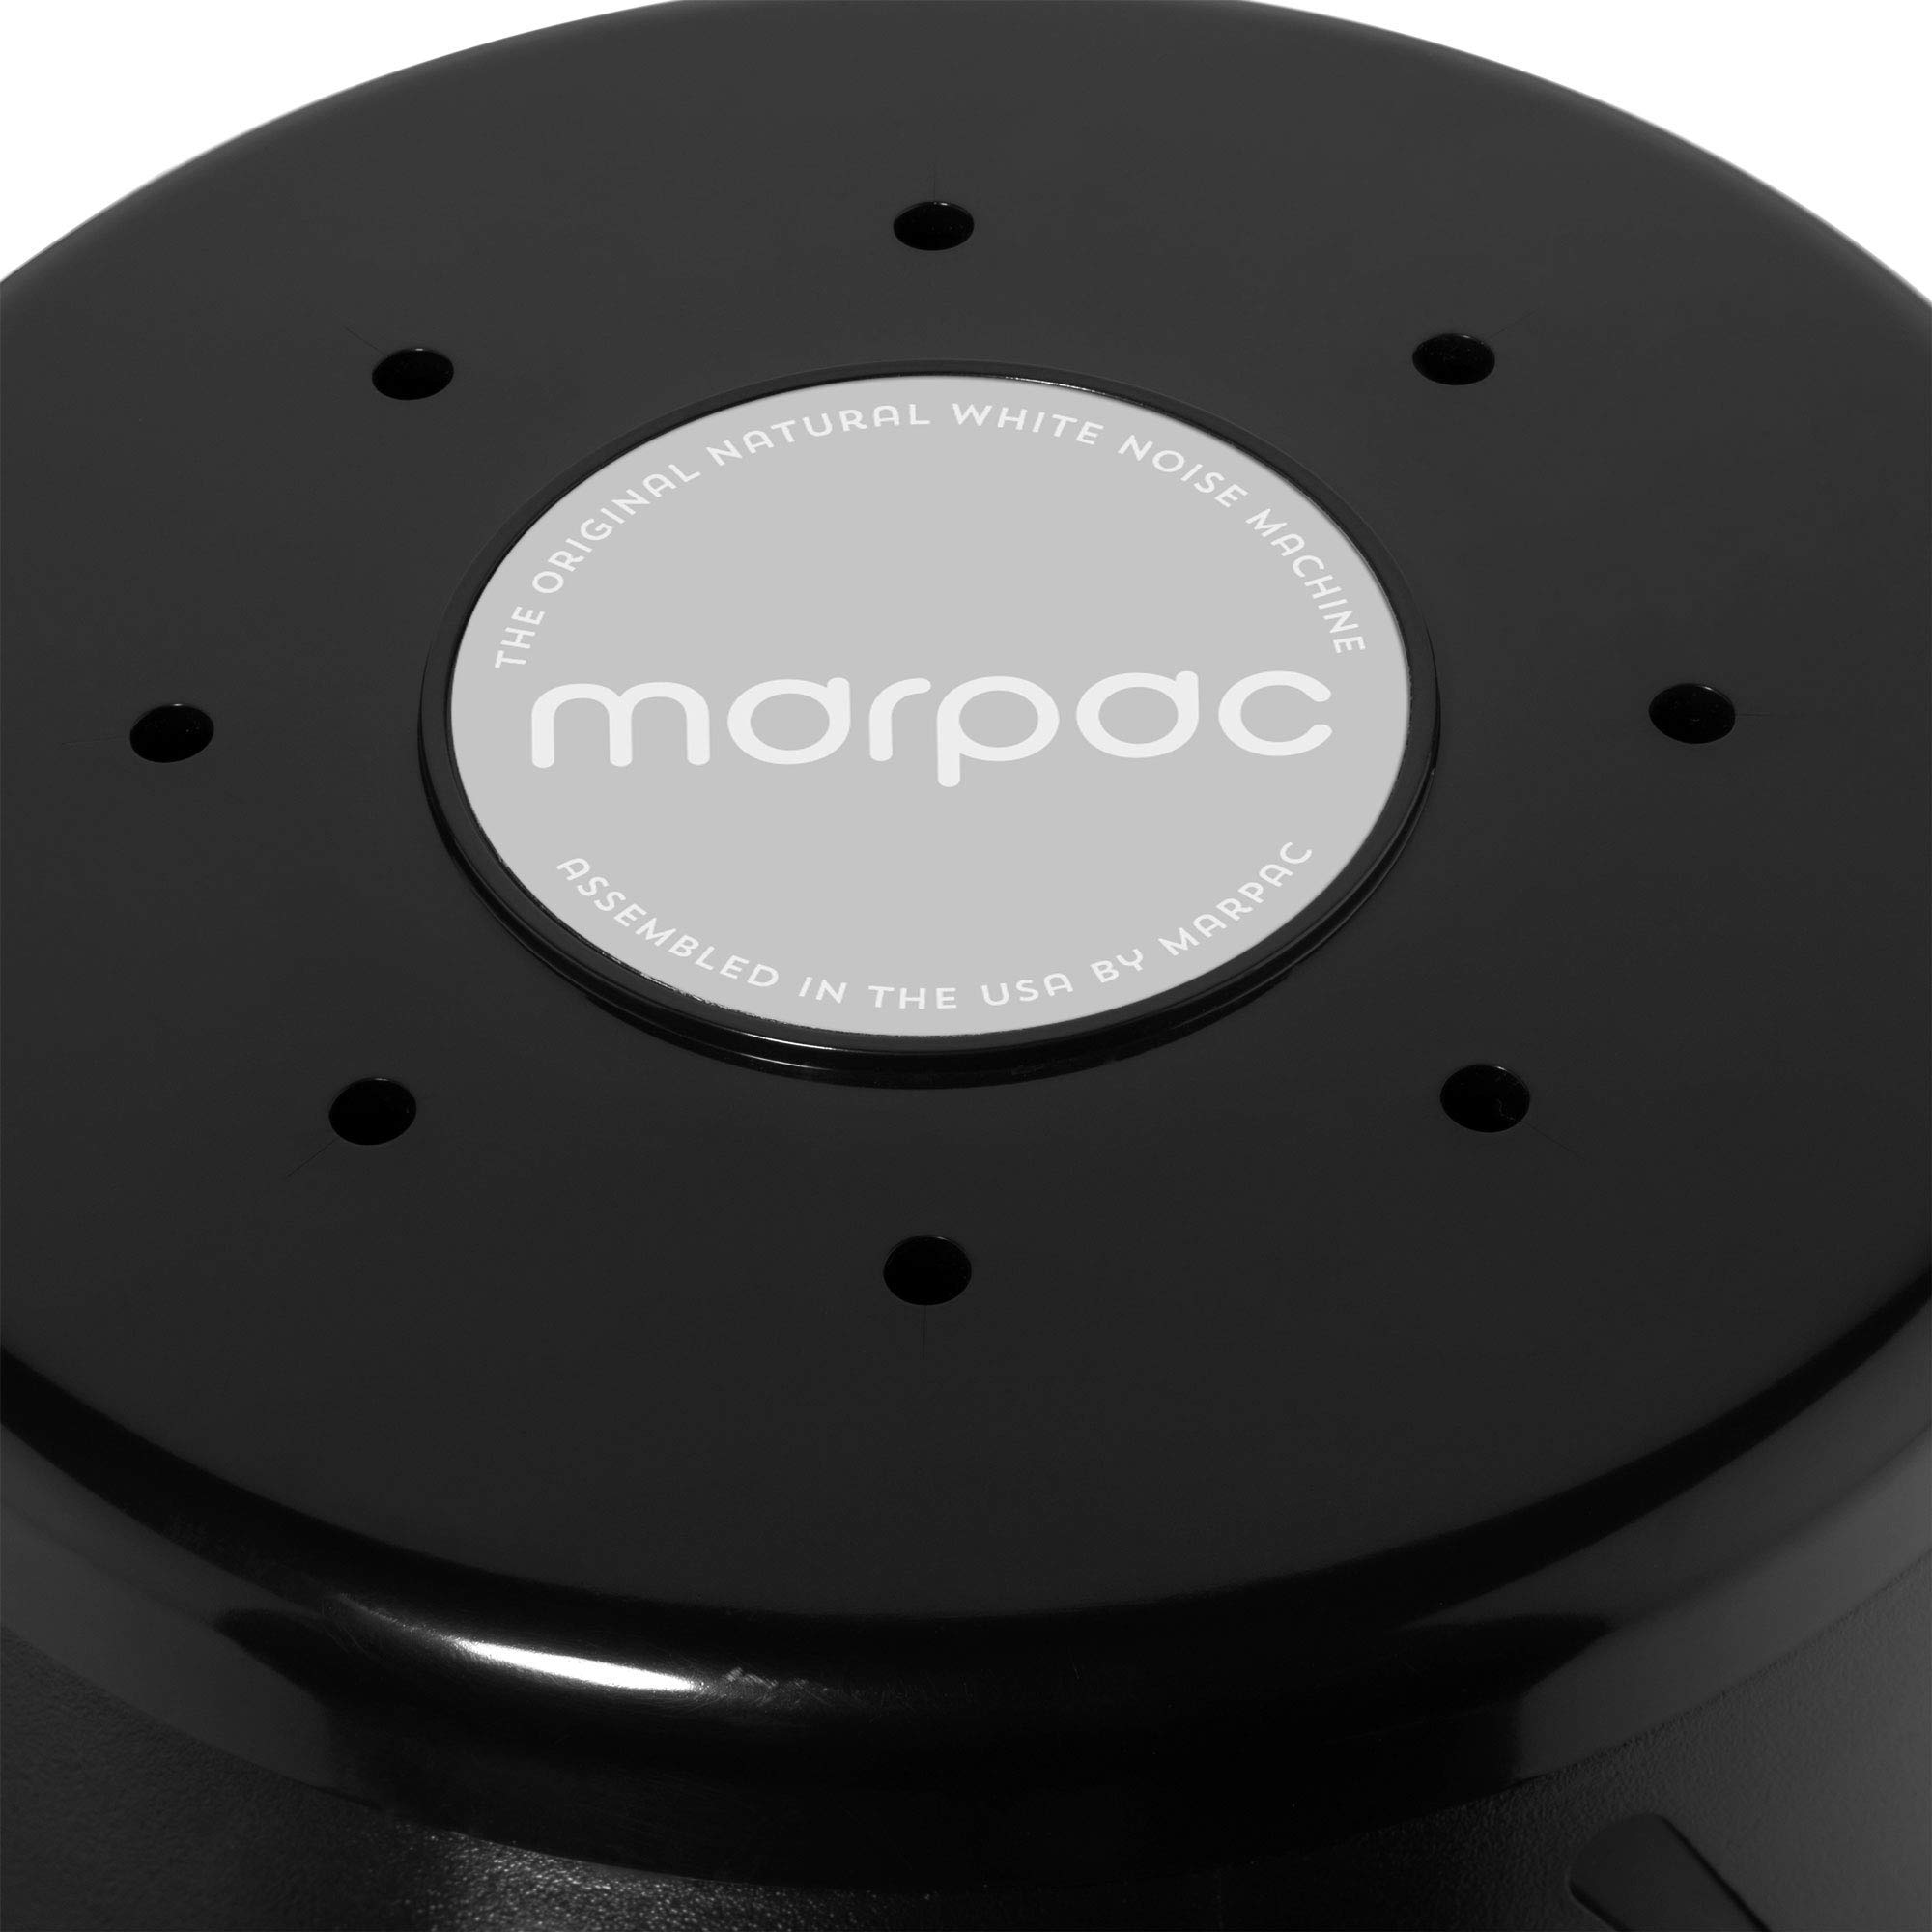 Marpac Dohm Classic Noise Sound Machine, Black (Renewed)